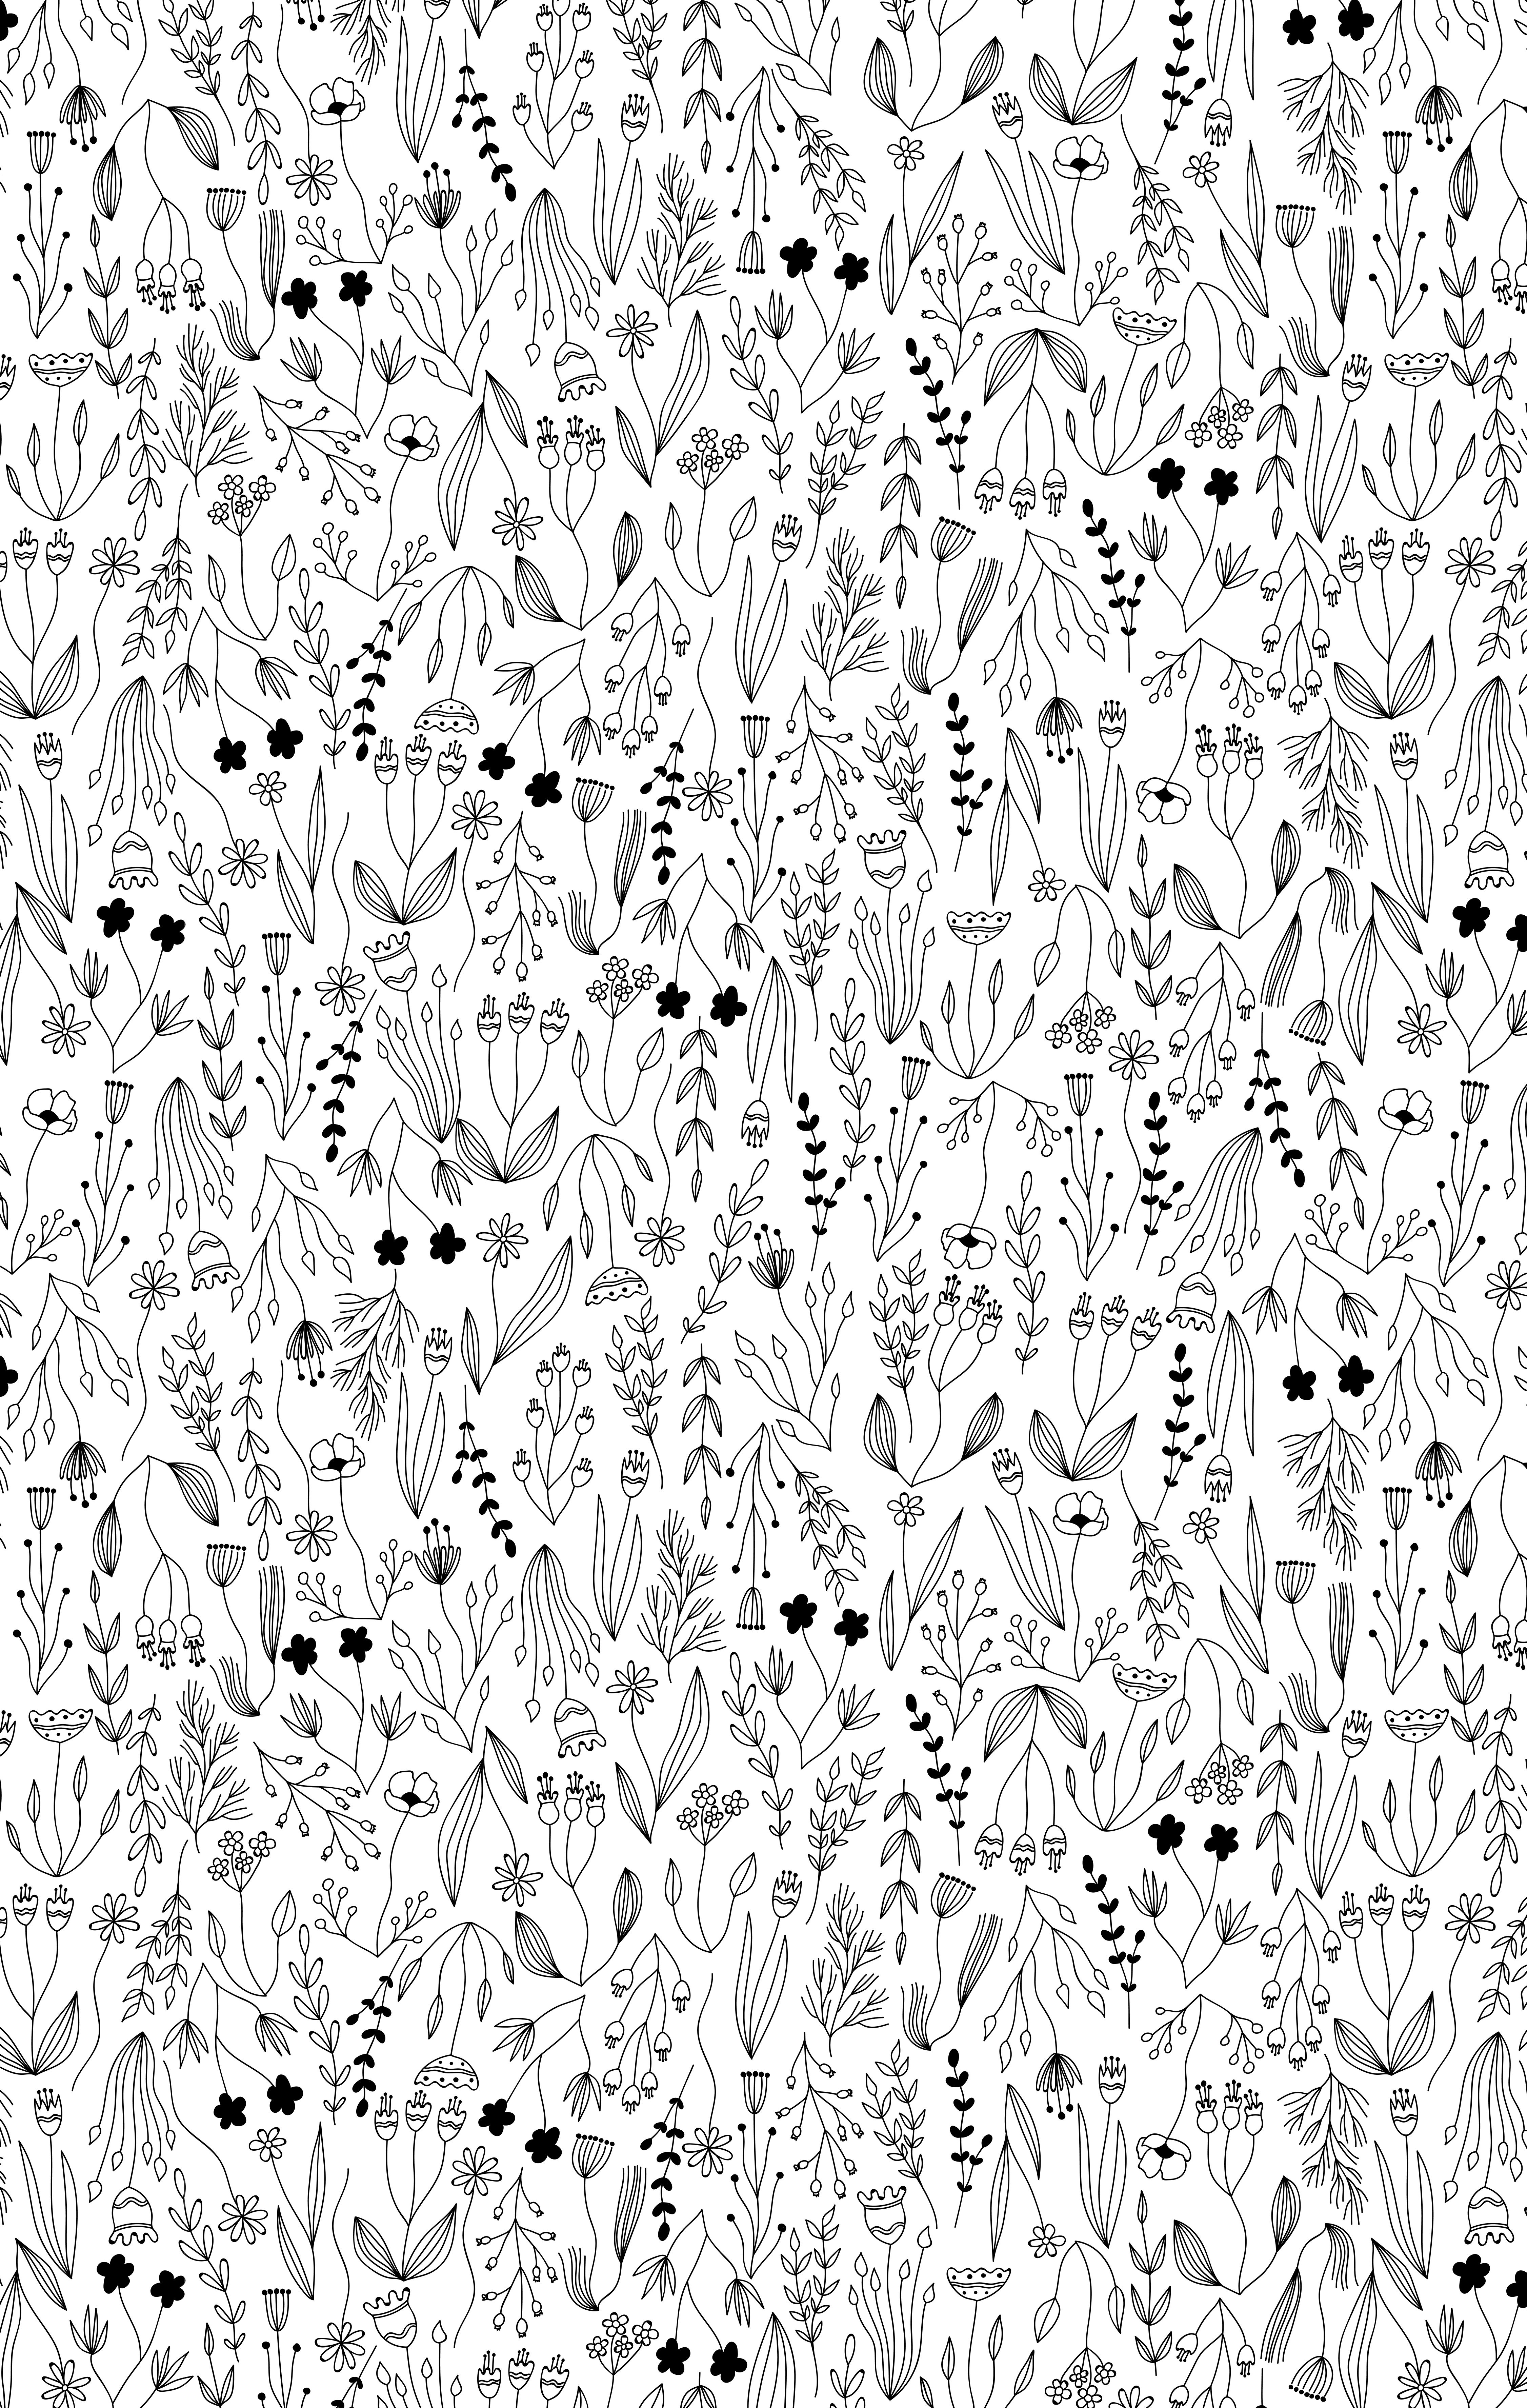 jpg freeuse download Botanical seamless pattern with. Vector bushes black and white